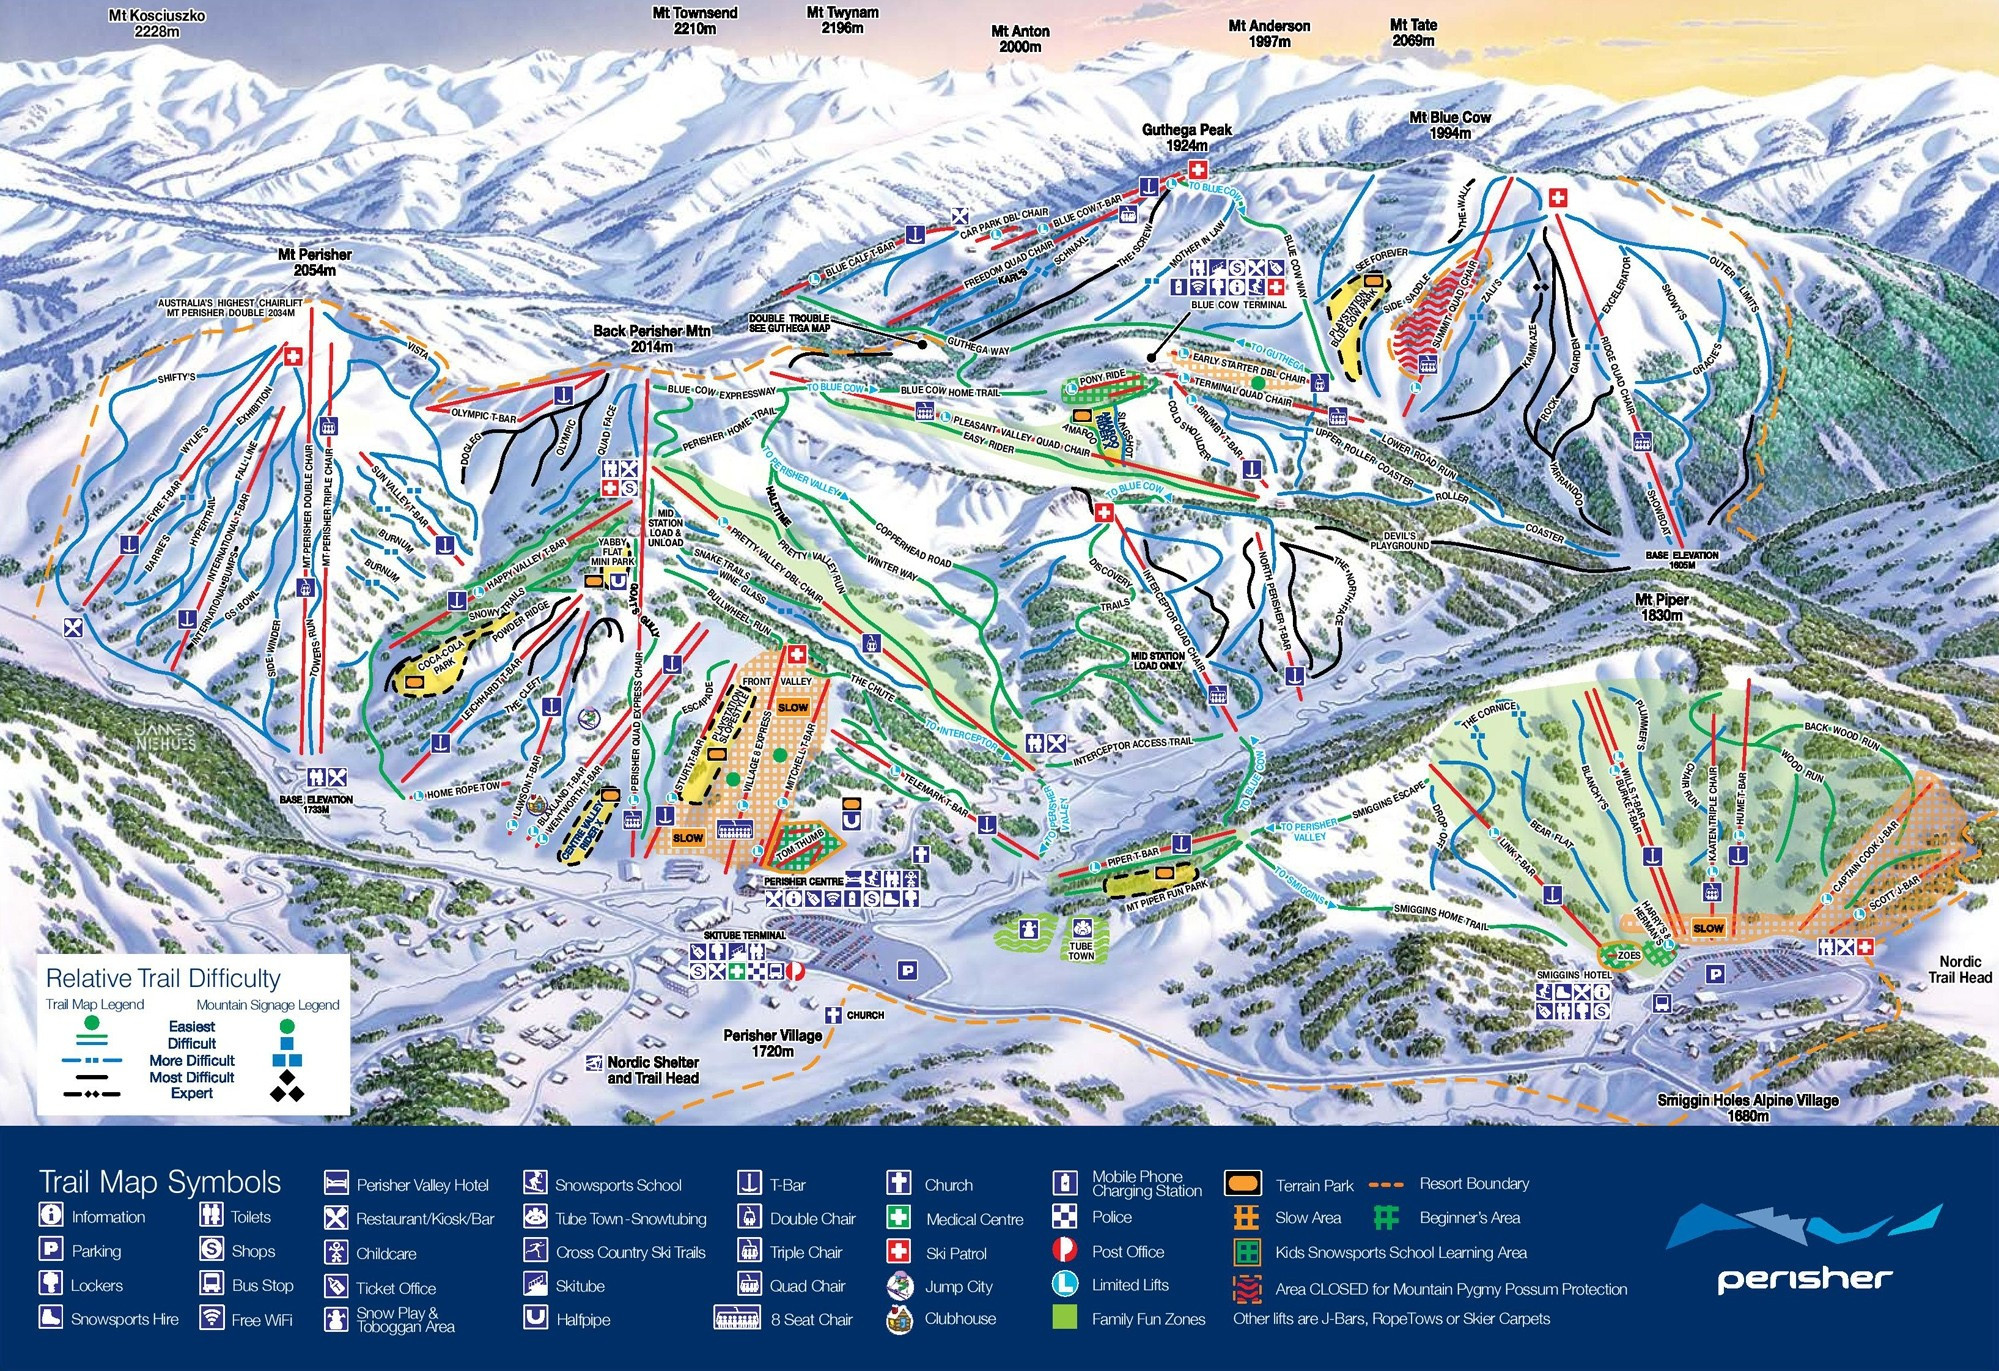 perisher blue trail map • piste map • panoramic mountain map